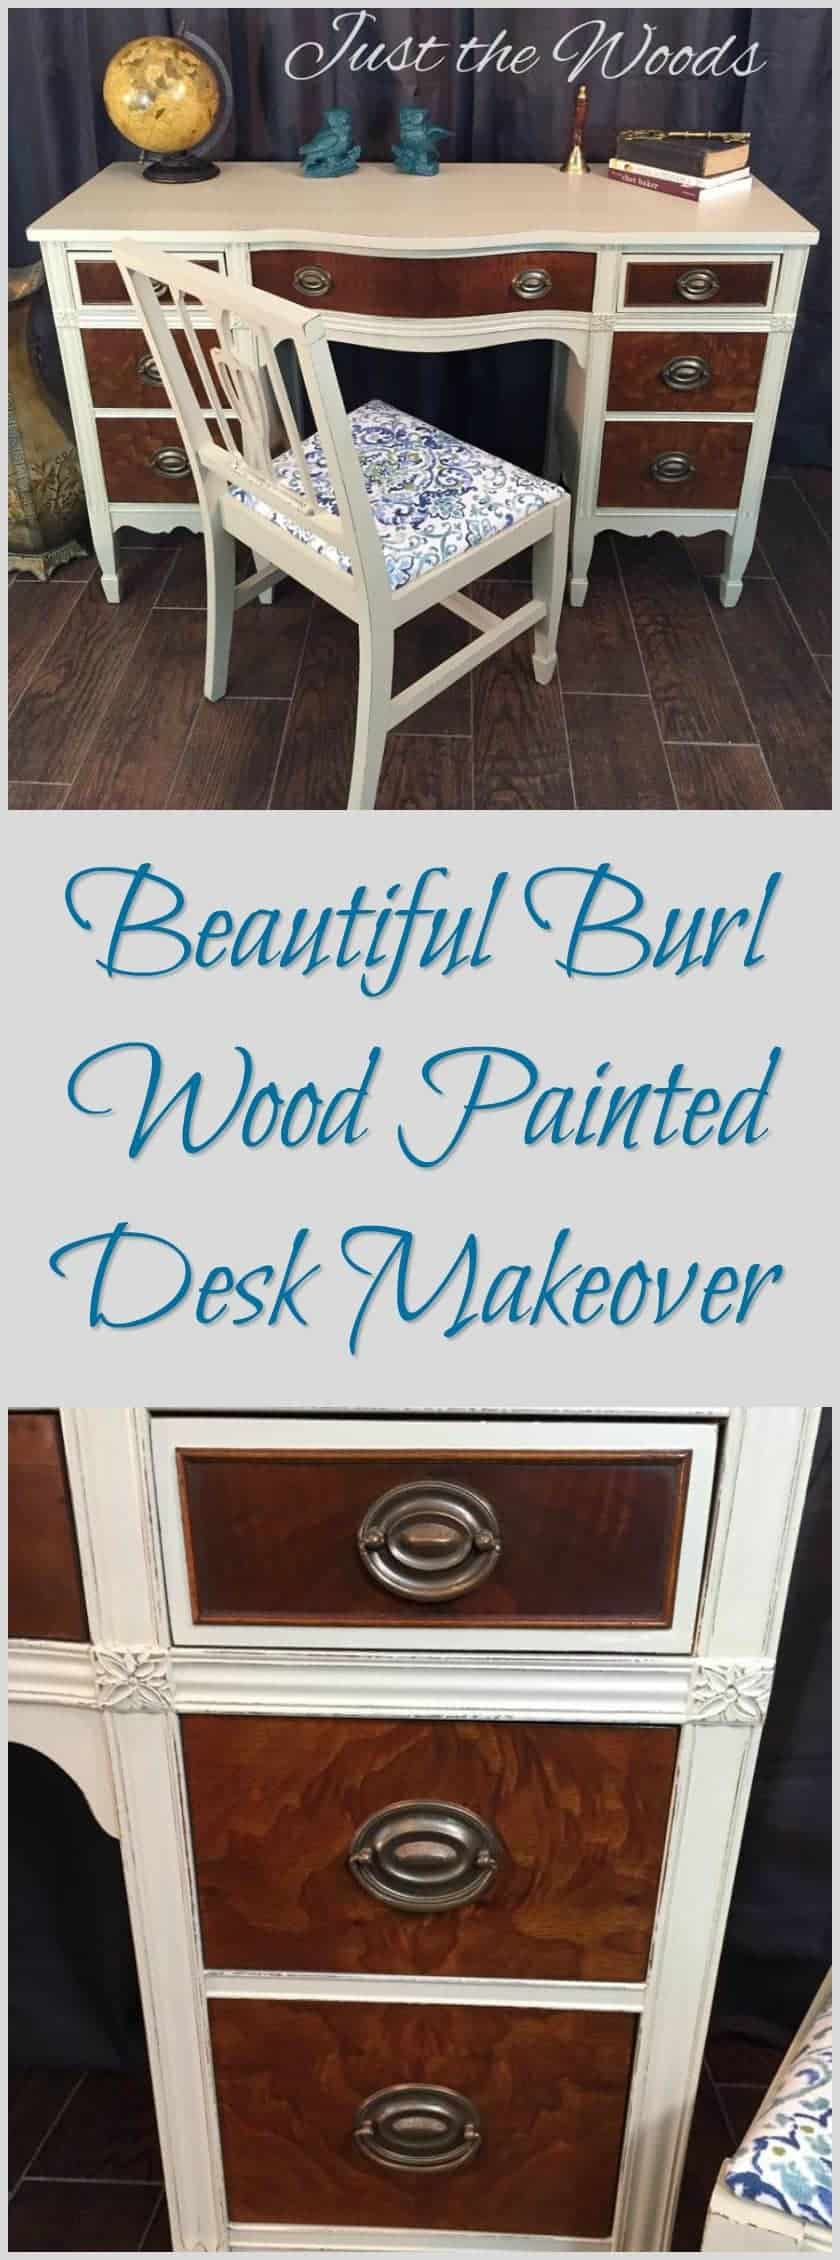 Vintage desk makeover. A painted desk with beautiful burl wood. Burled wood drawers preserved on a refinished desk. A balance of paint and burl furniture.